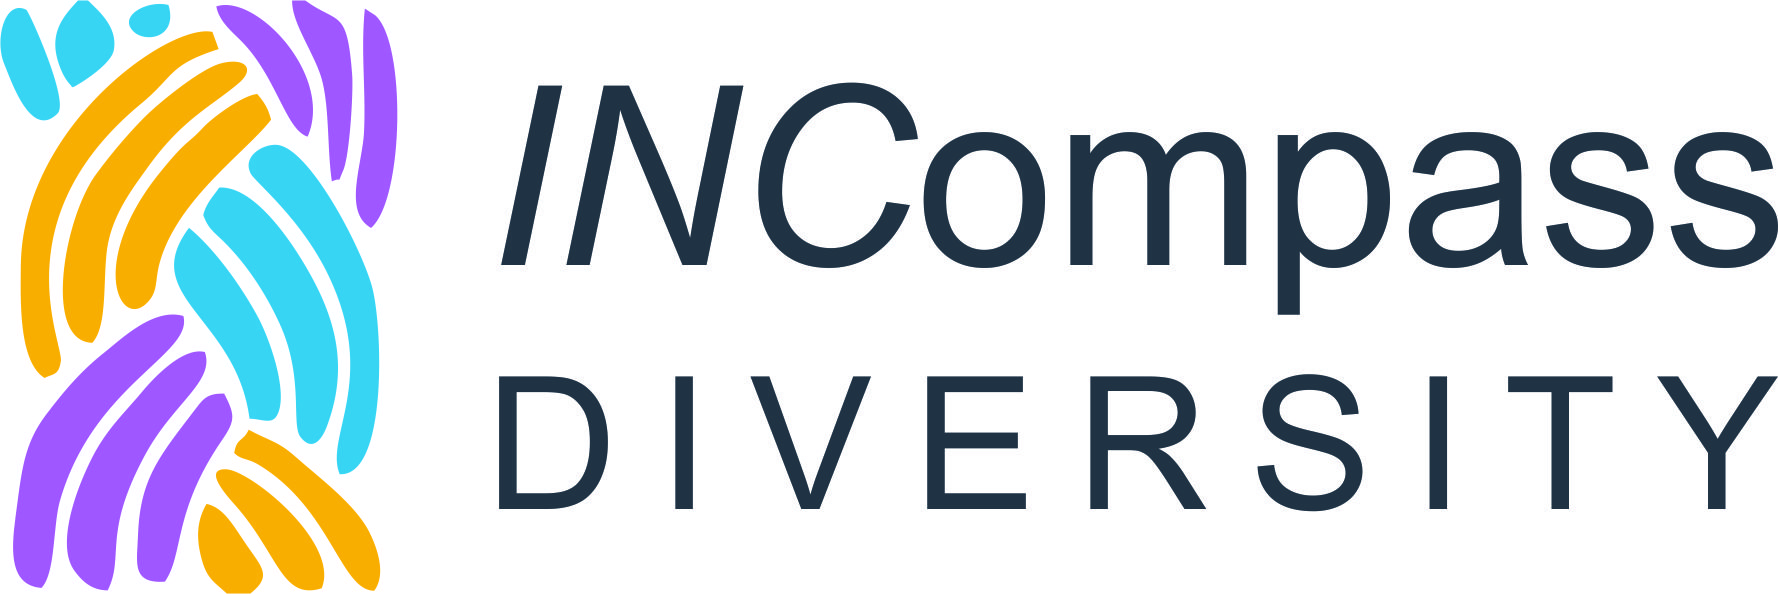 INCompass Diversity -